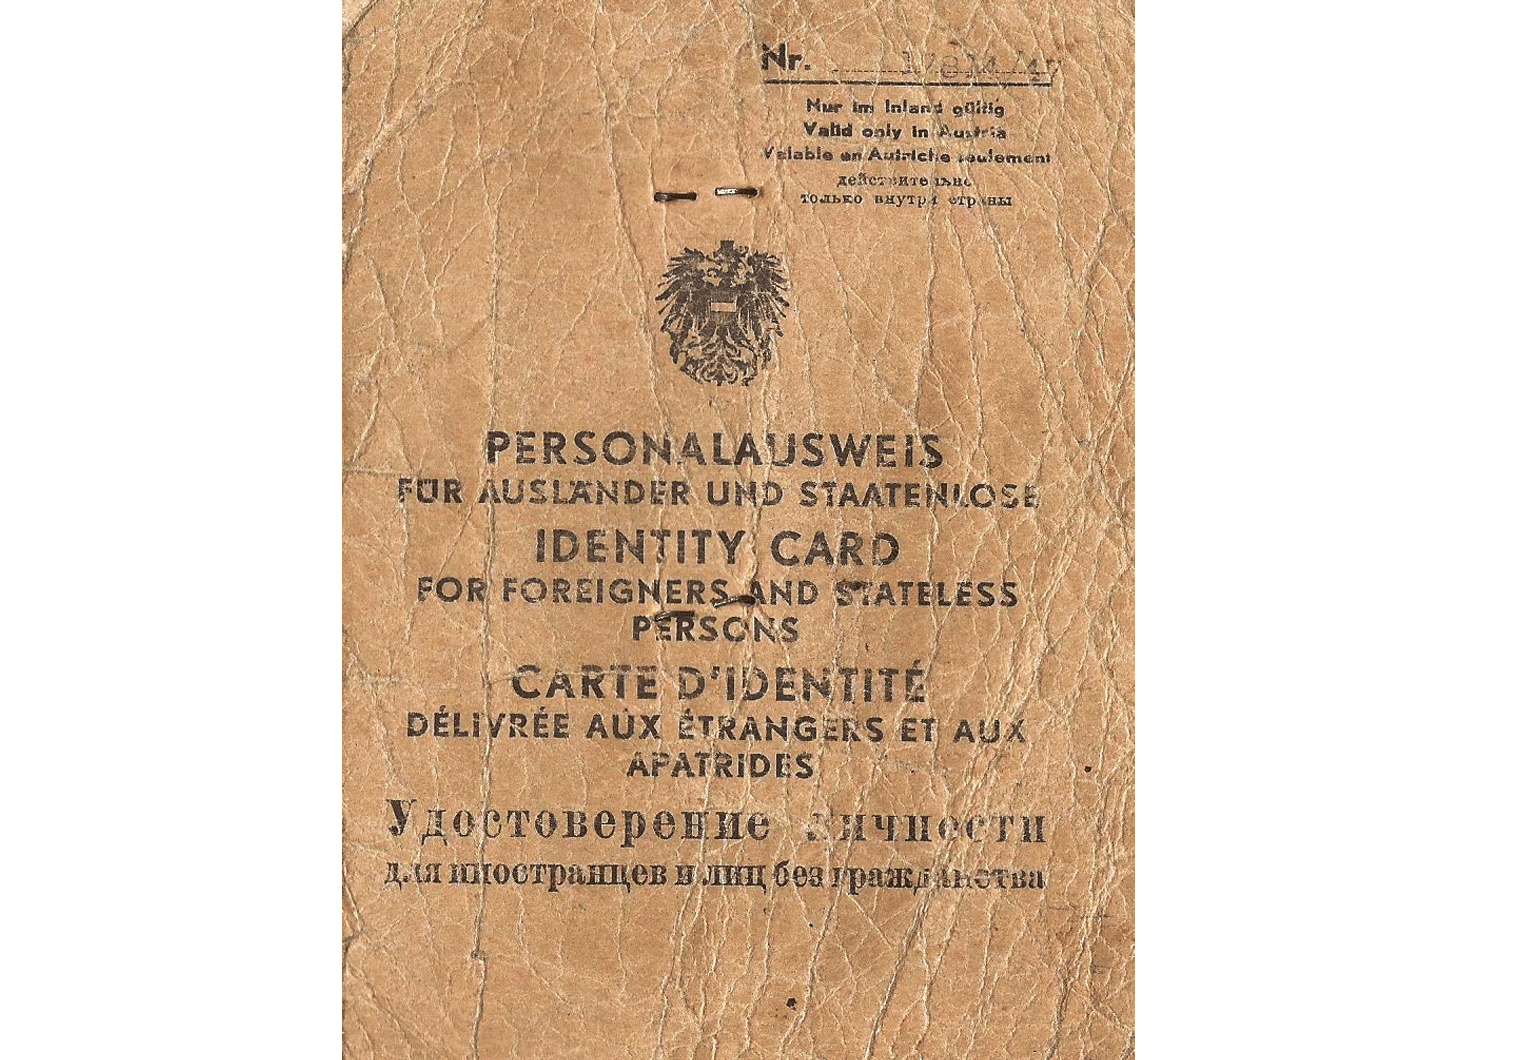 post-war Austrian stateless ID document